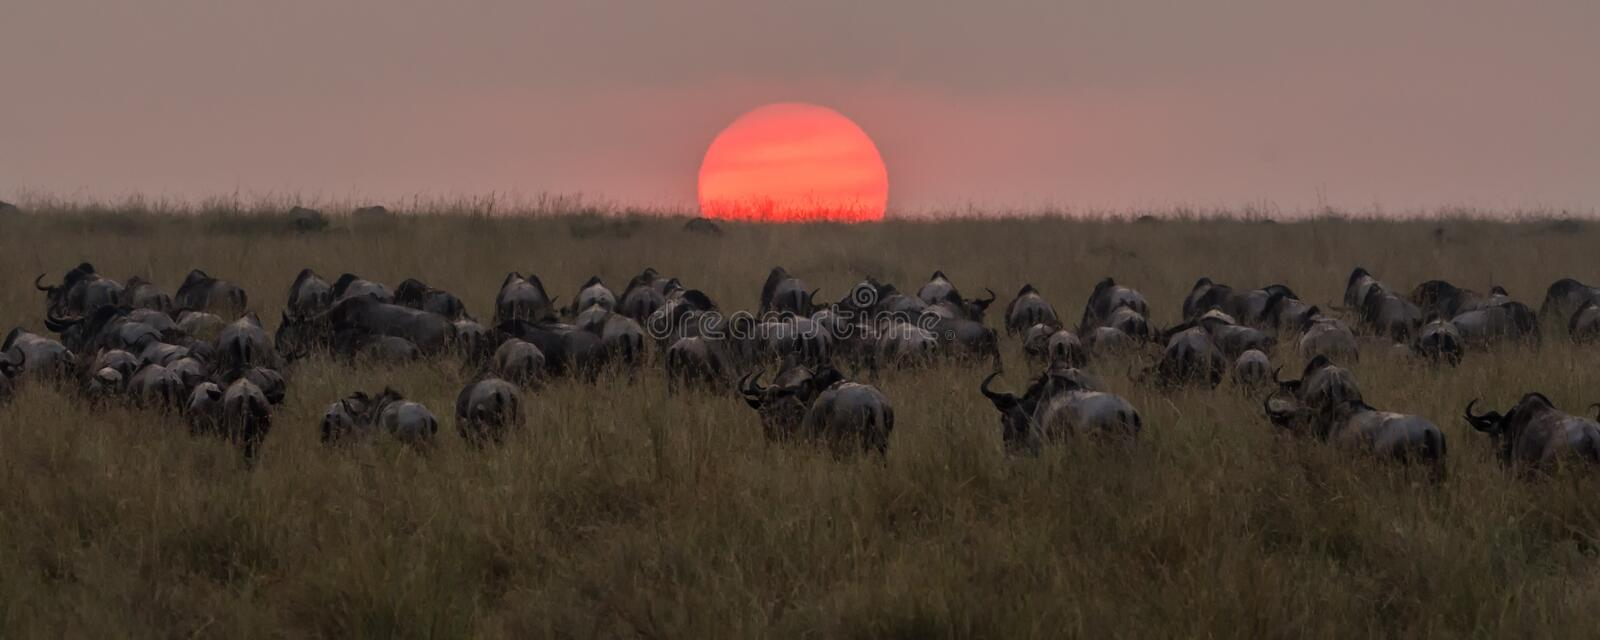 Herd of wildebeest walking into the sunset after crossing the Nile River royalty free stock image